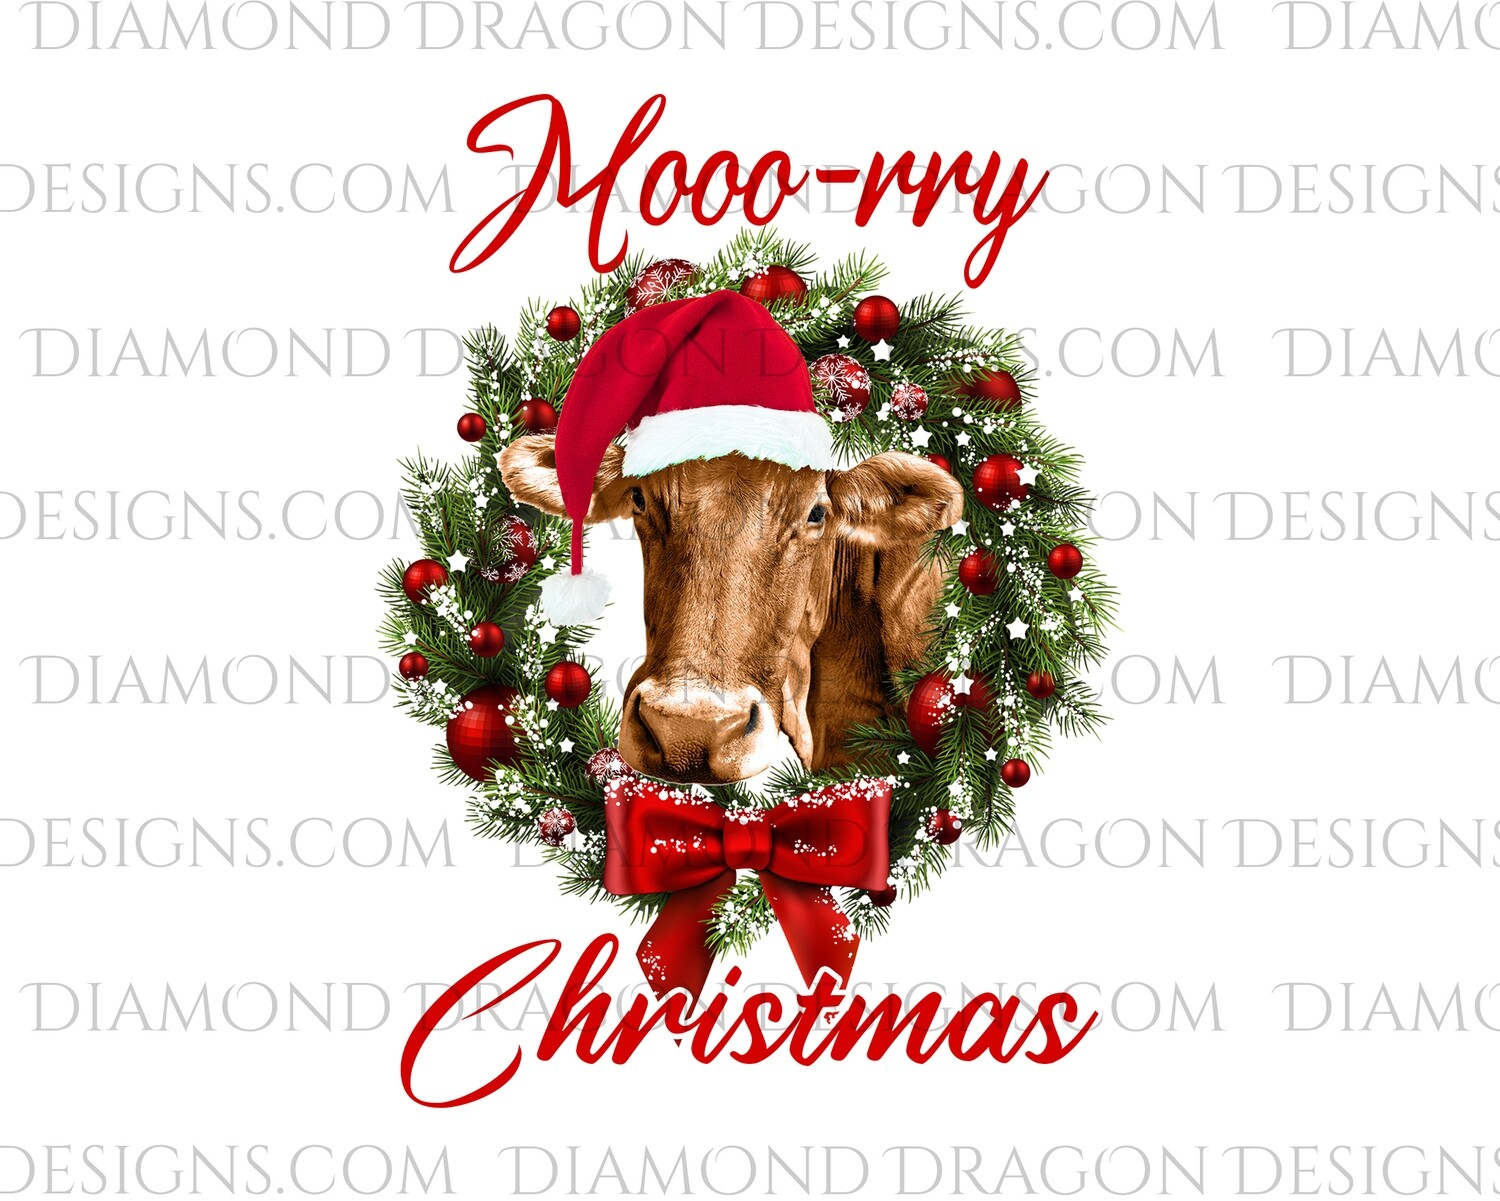 Cows - Cute Christmas Wreath Cow, Santa Cow, Moo-rry Christmas, Digital Image